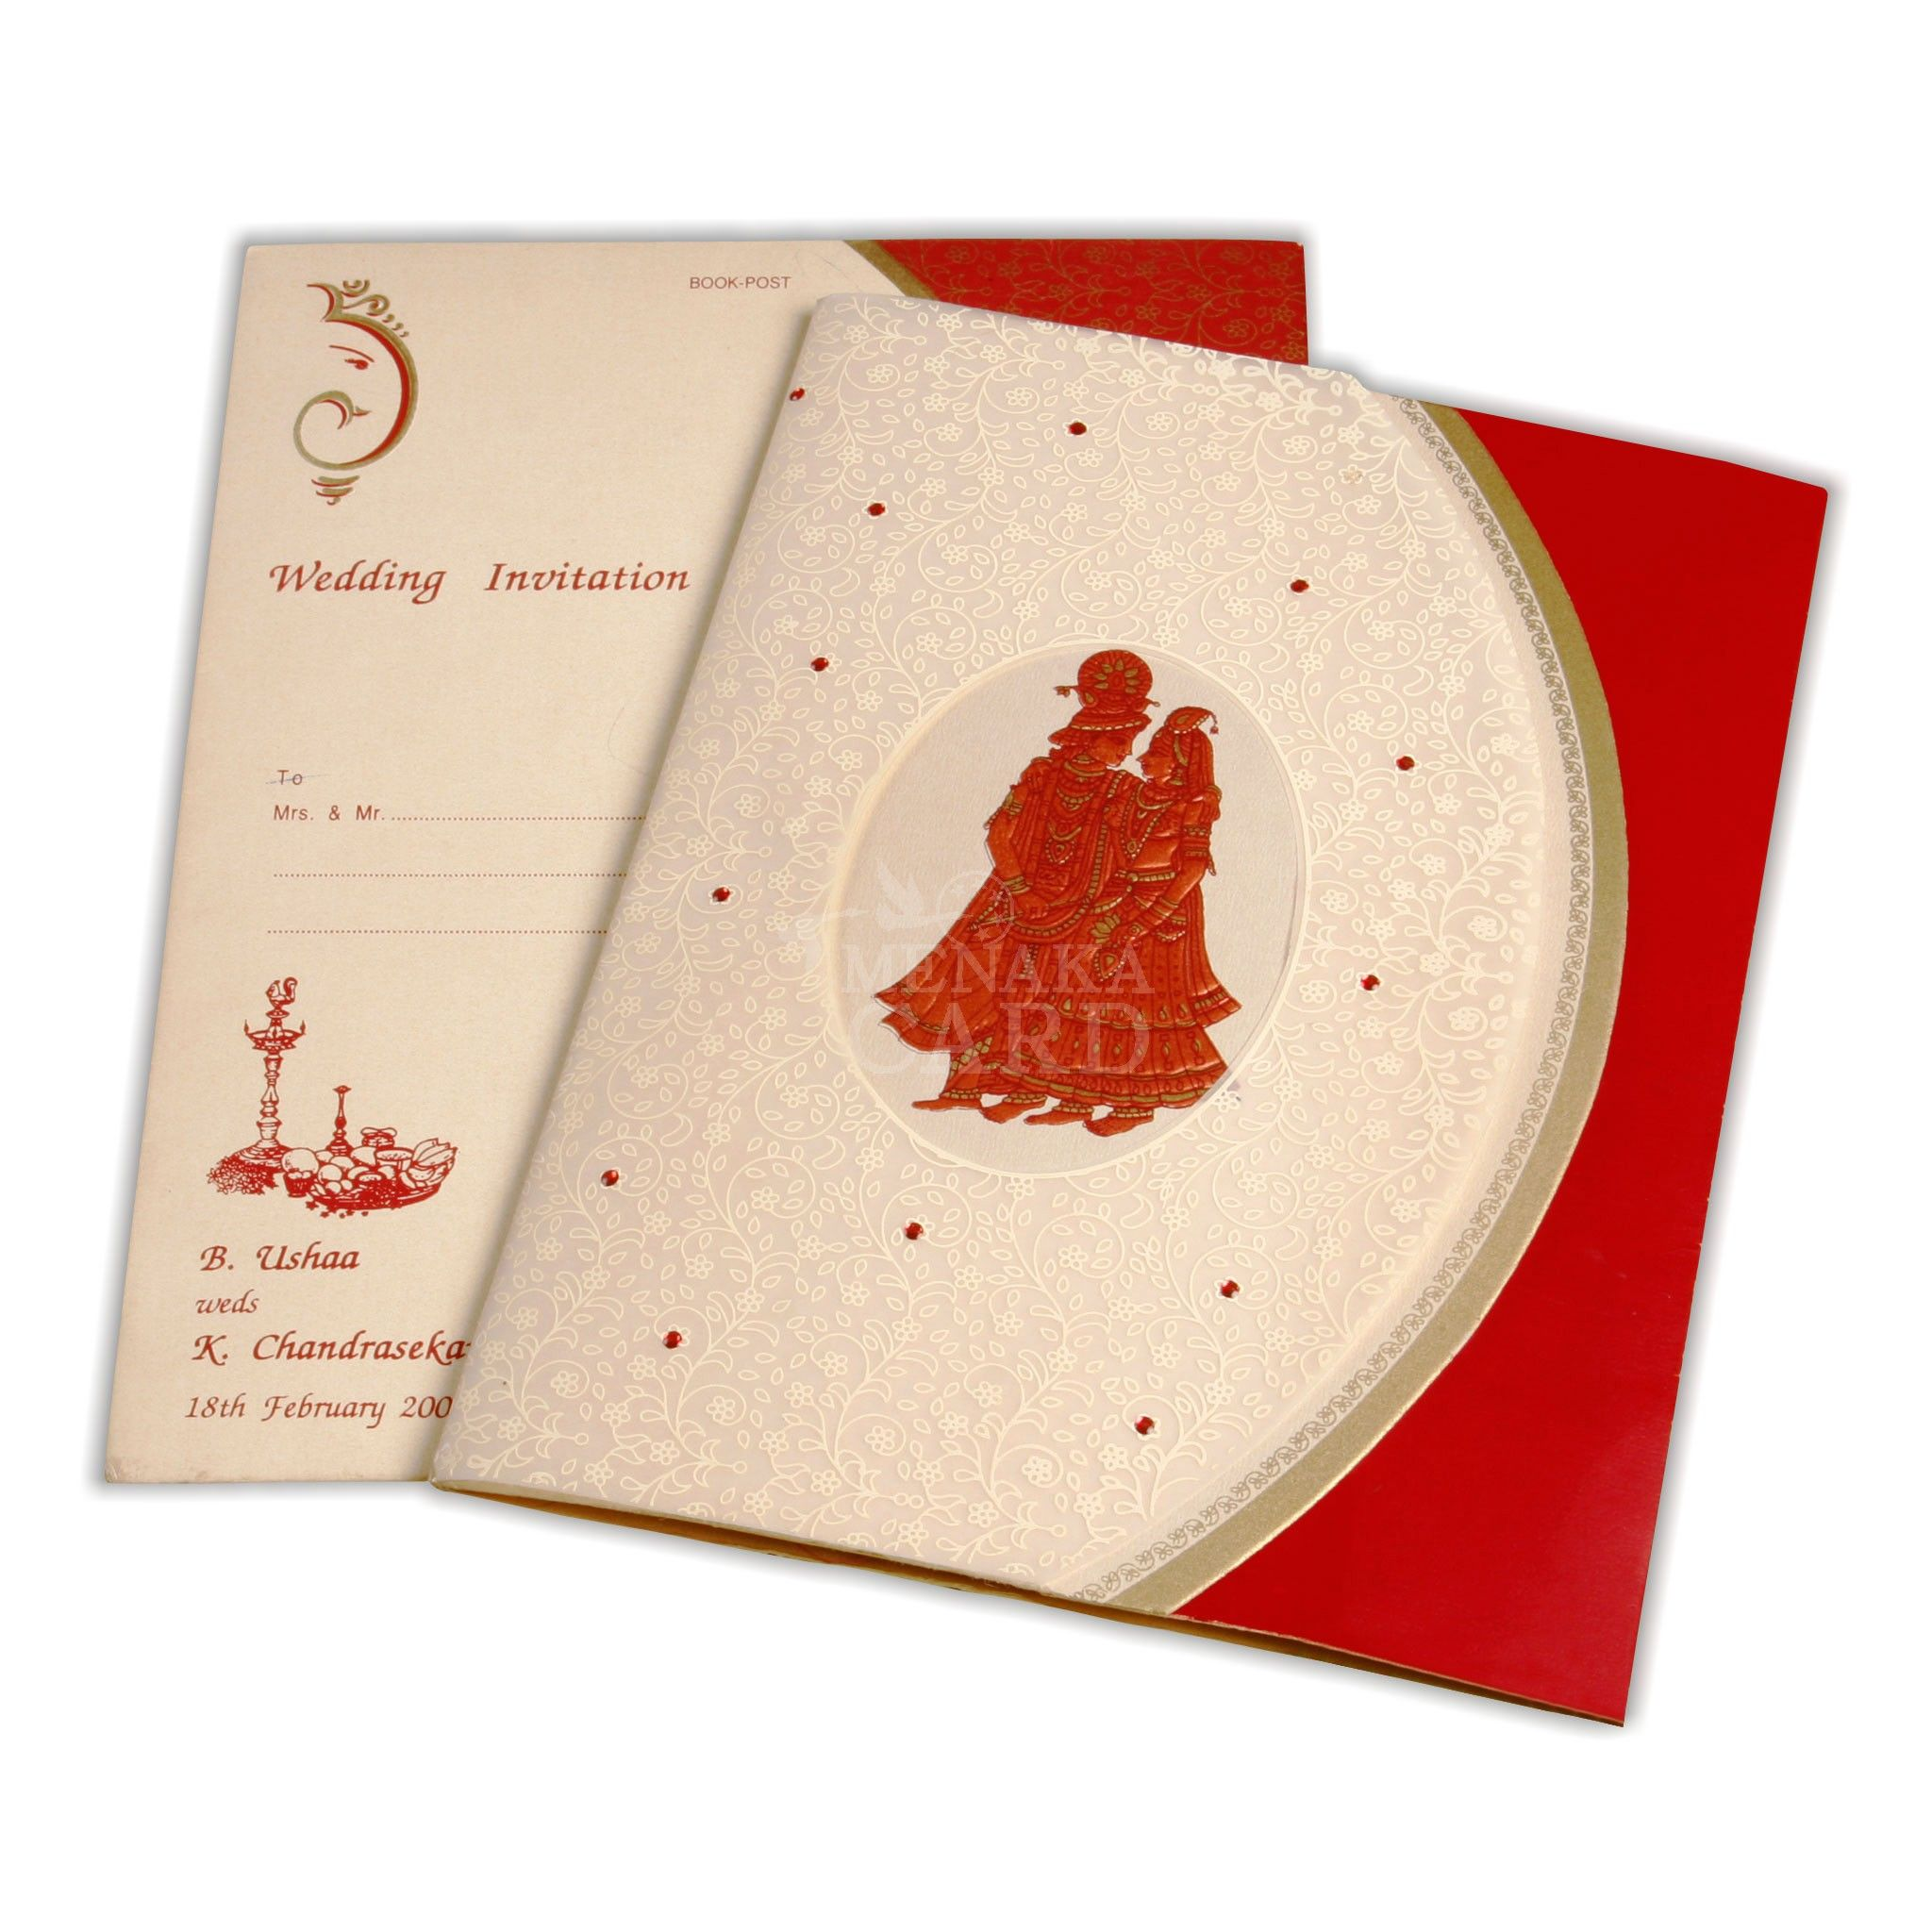 Ss-5006 | Copper color, Floral designs and Wedding card